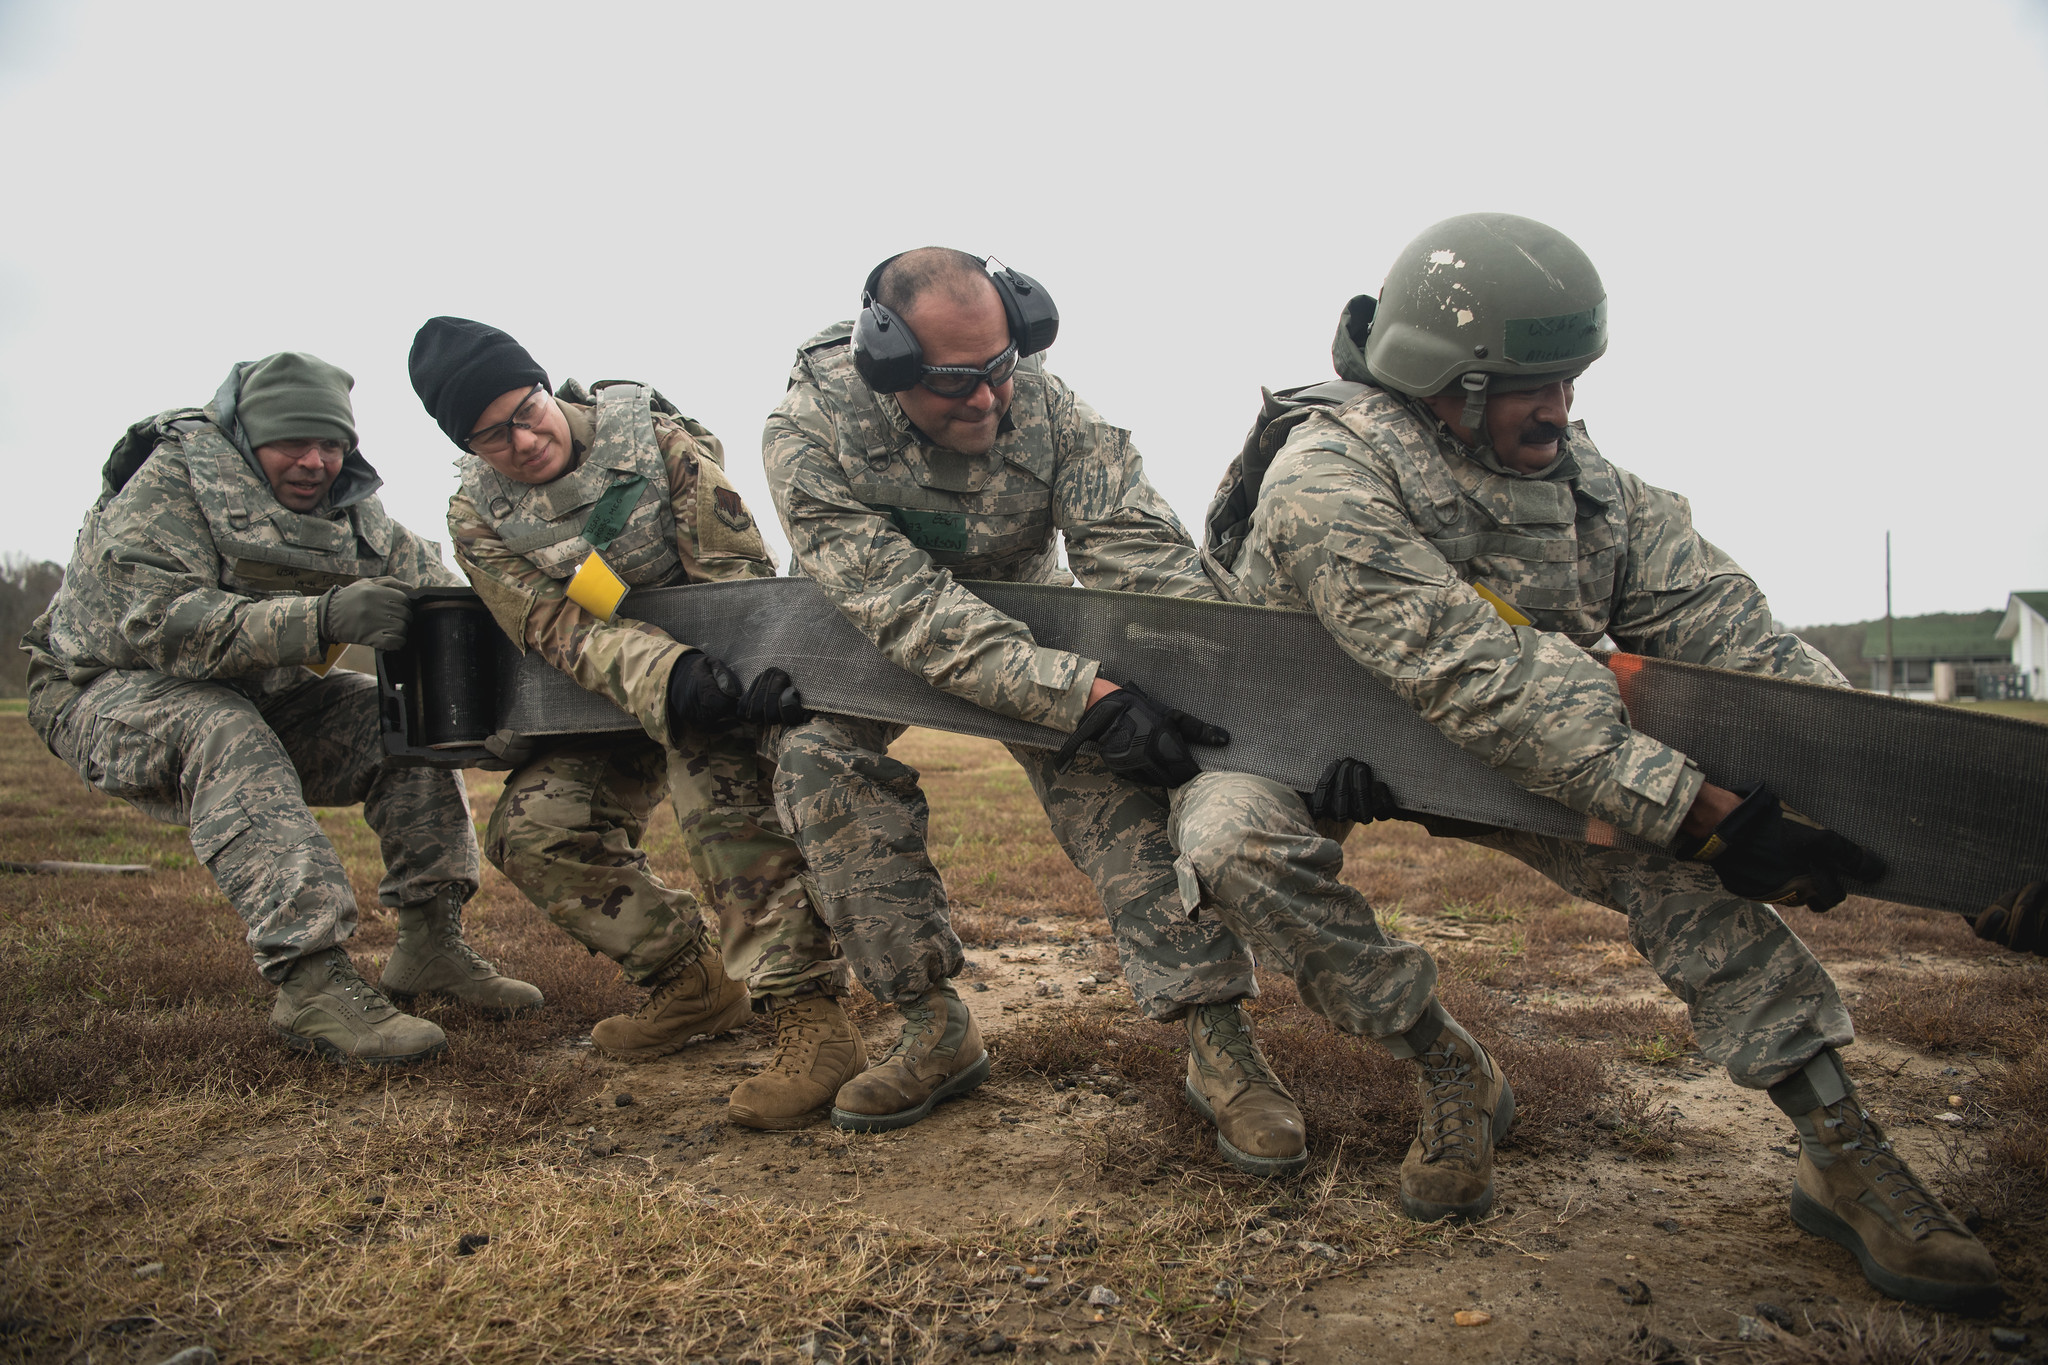 Airmen assigned to the 203rd RED HORSE Squadron, Virginia Air National Guard set up a mobile aircraft arresting cable during a four-day field training exercise on Nov. 16, 2019. (Senior Airman Bryan Myhr/Air National Guard)